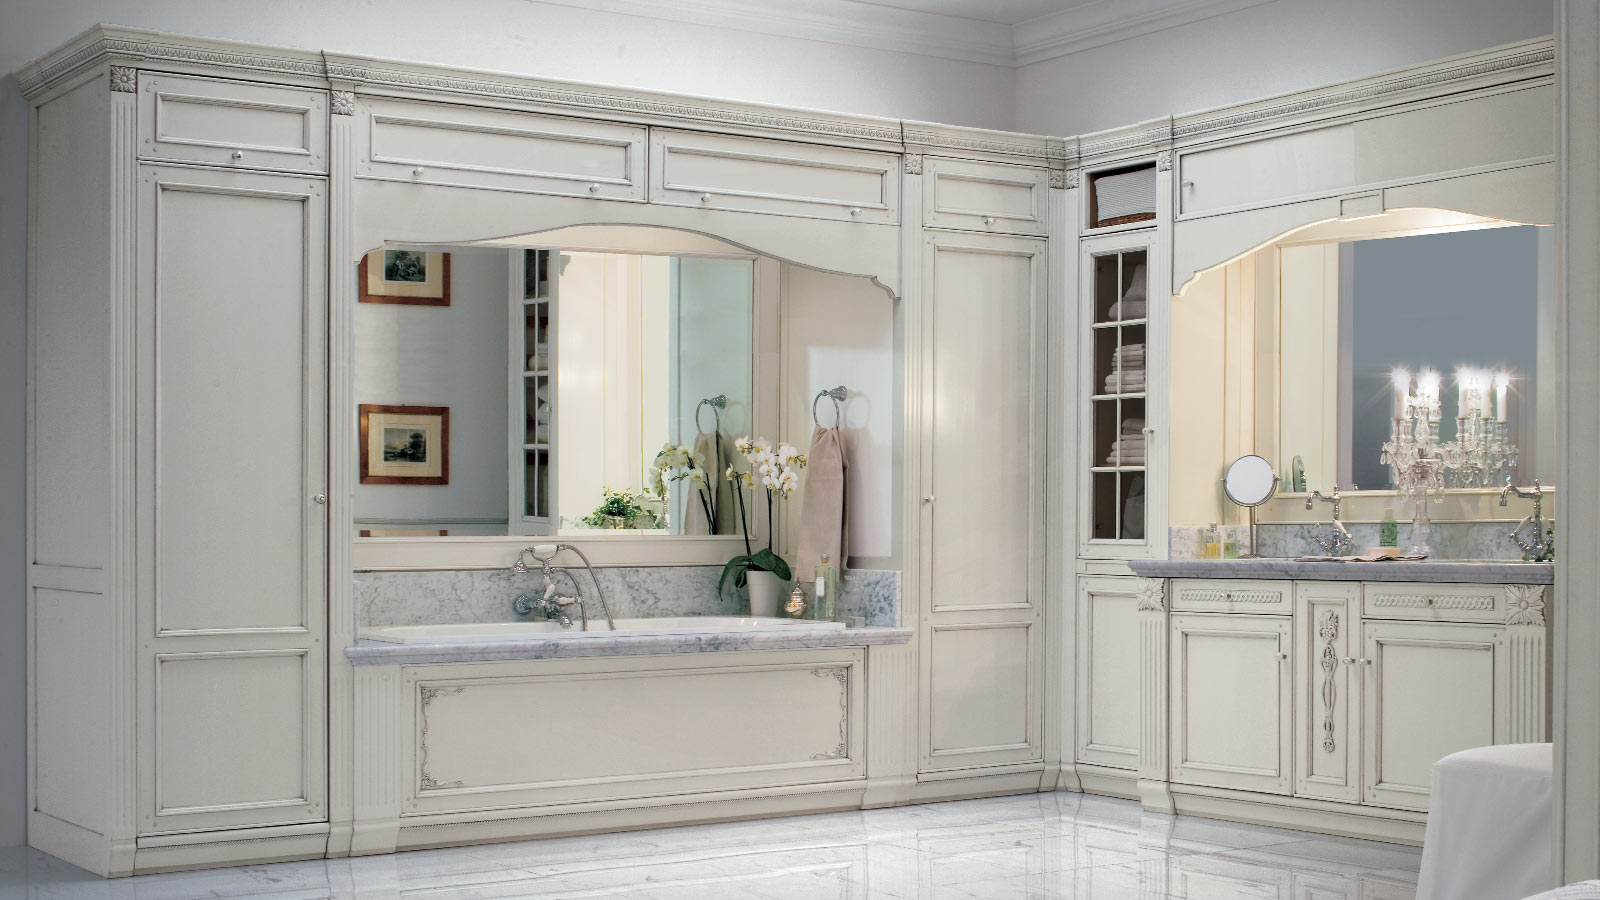 Classic Bathroom Design Ideas ~ Classic bathroom designs 13 ideas enhancedhomes.org